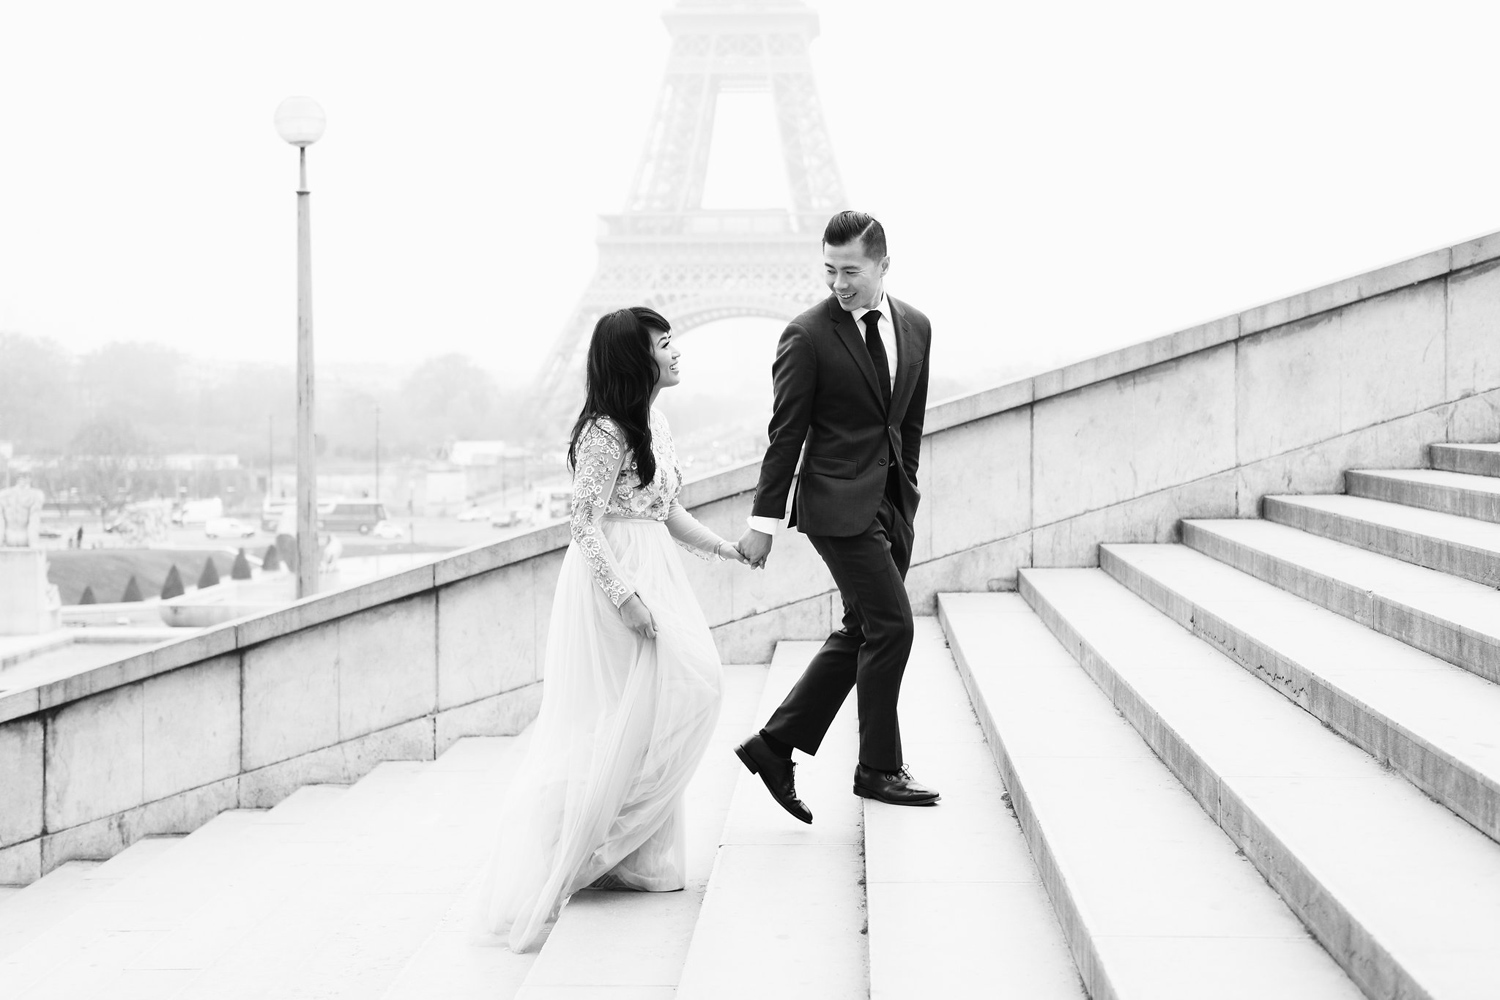 003-katie-mitchell-engagement-photographer-paris-france.jpg